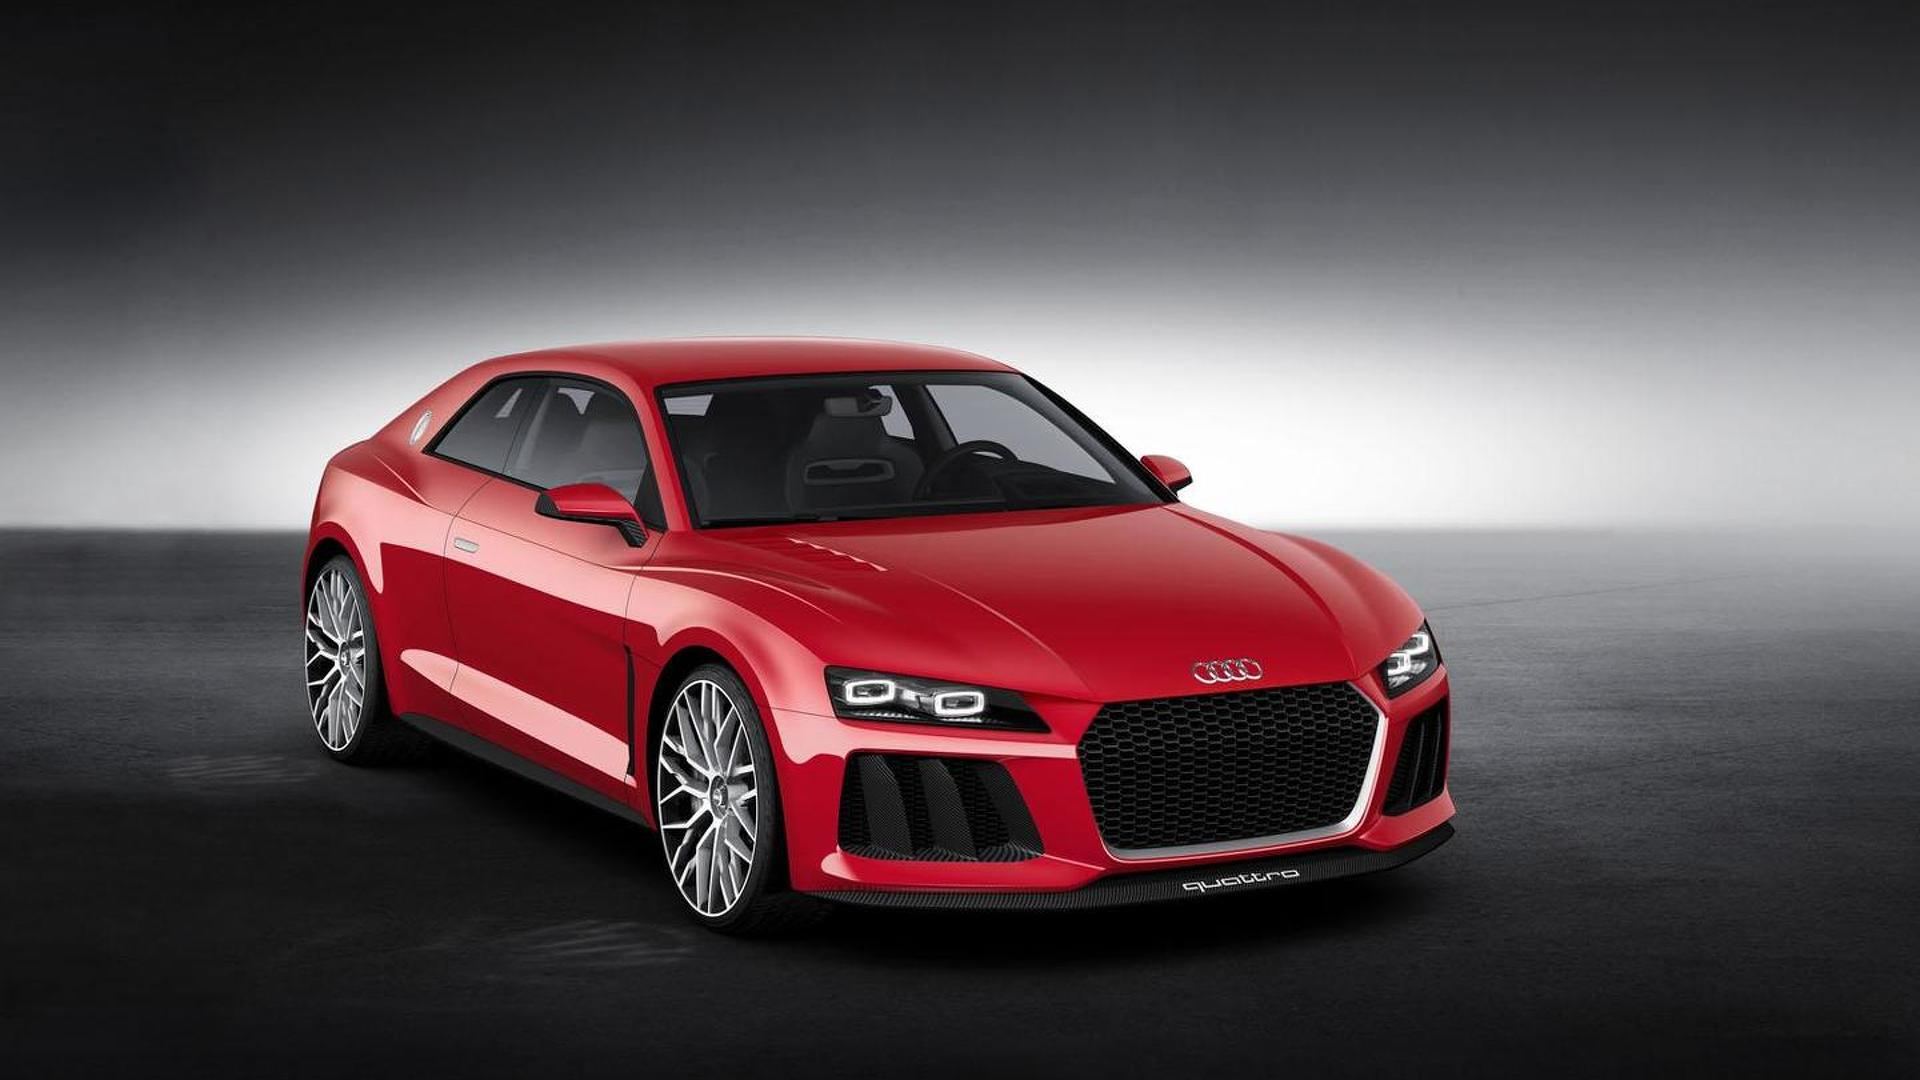 Audi Quattro still under development, could be more extreme than the previous concepts